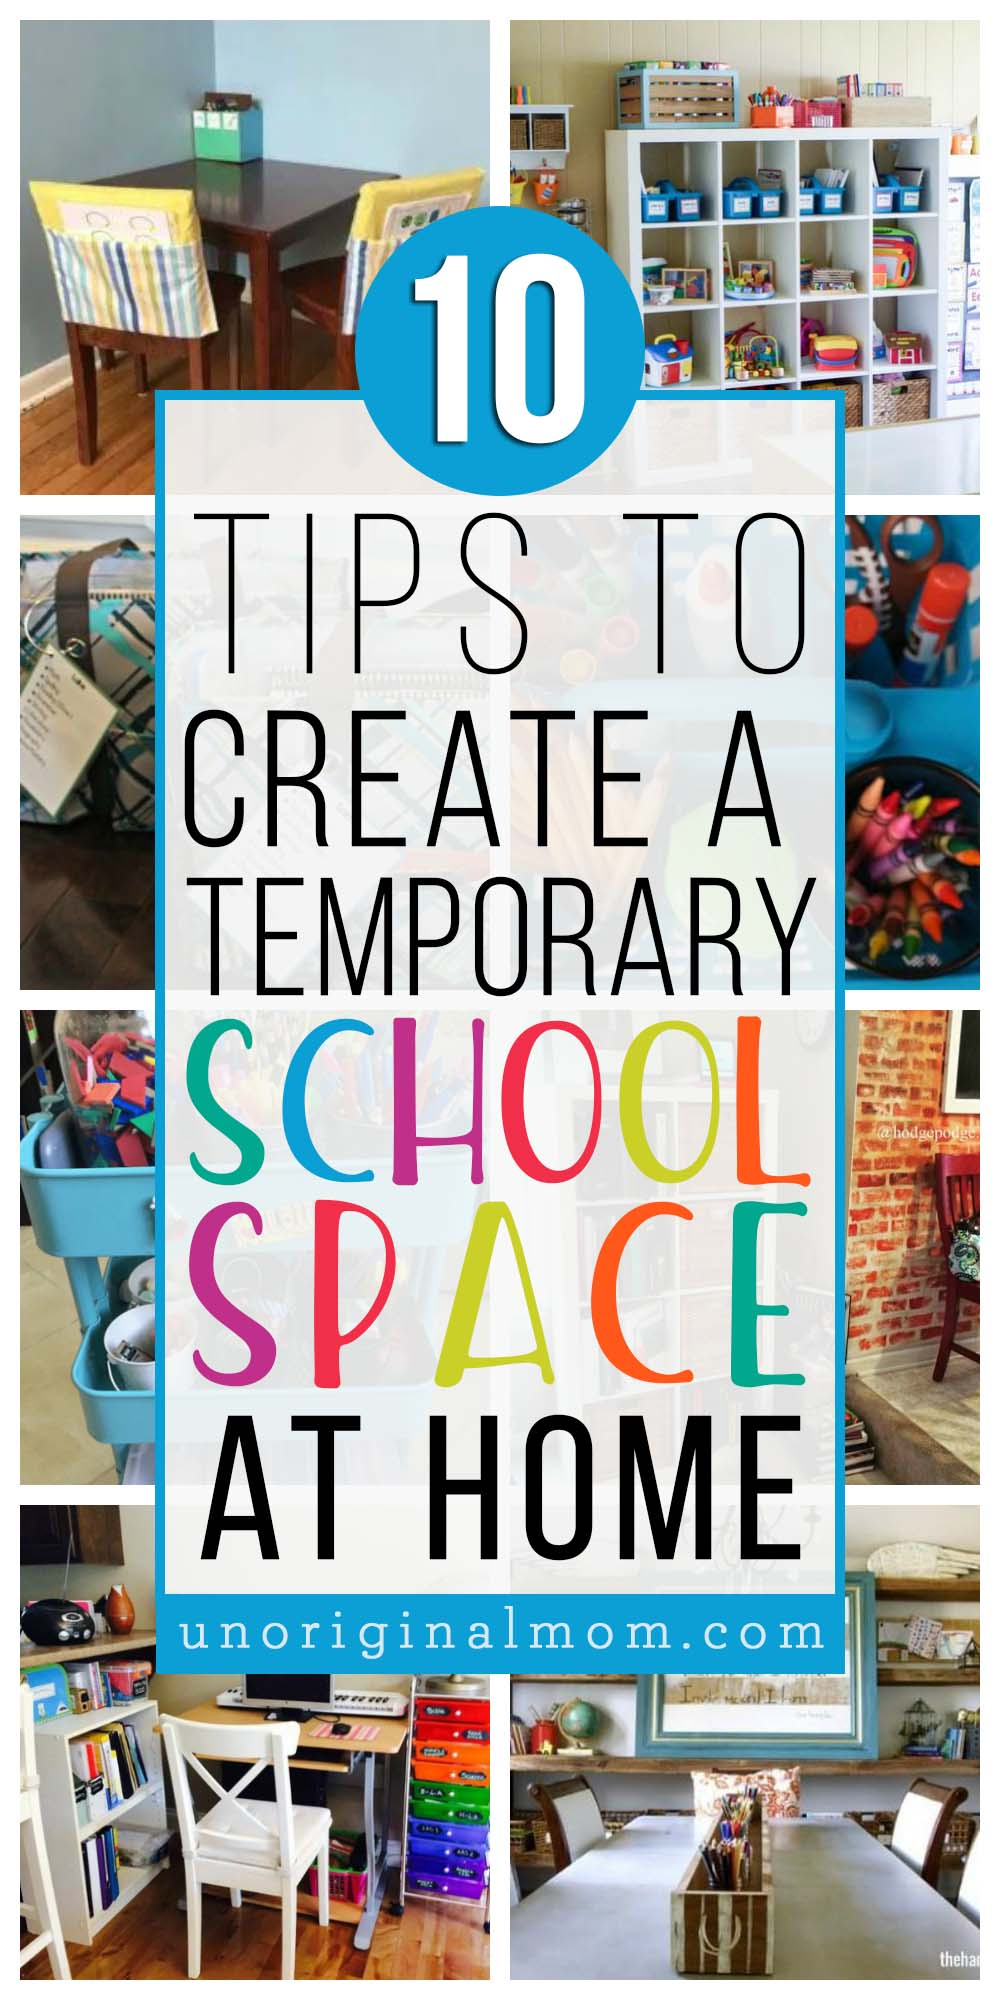 10 tips for how to create a temporary school space at home. Great for homeschoolers, remote school, or virtual school.